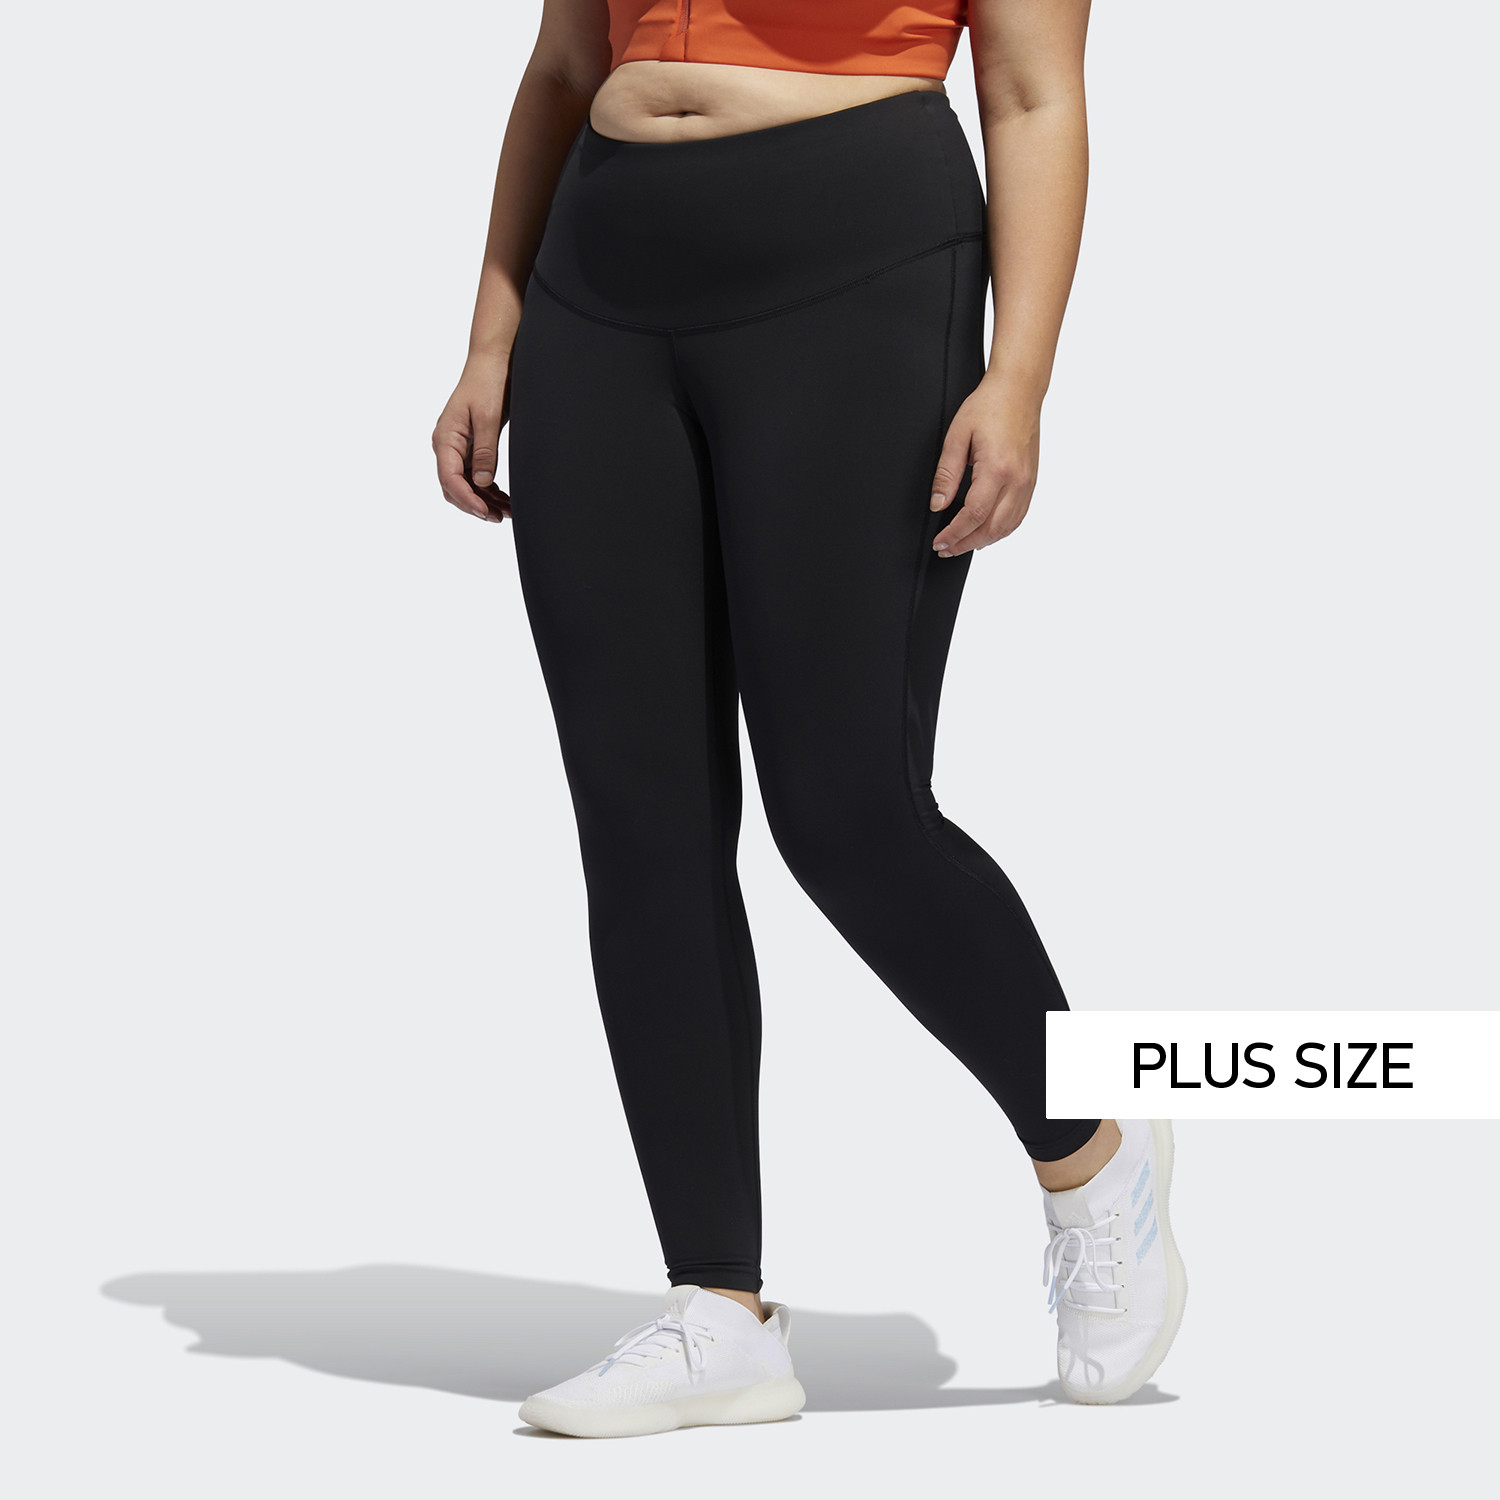 adidas Performance Believe This Solid 7/8 Plus Size Tights (9000046729_1469)